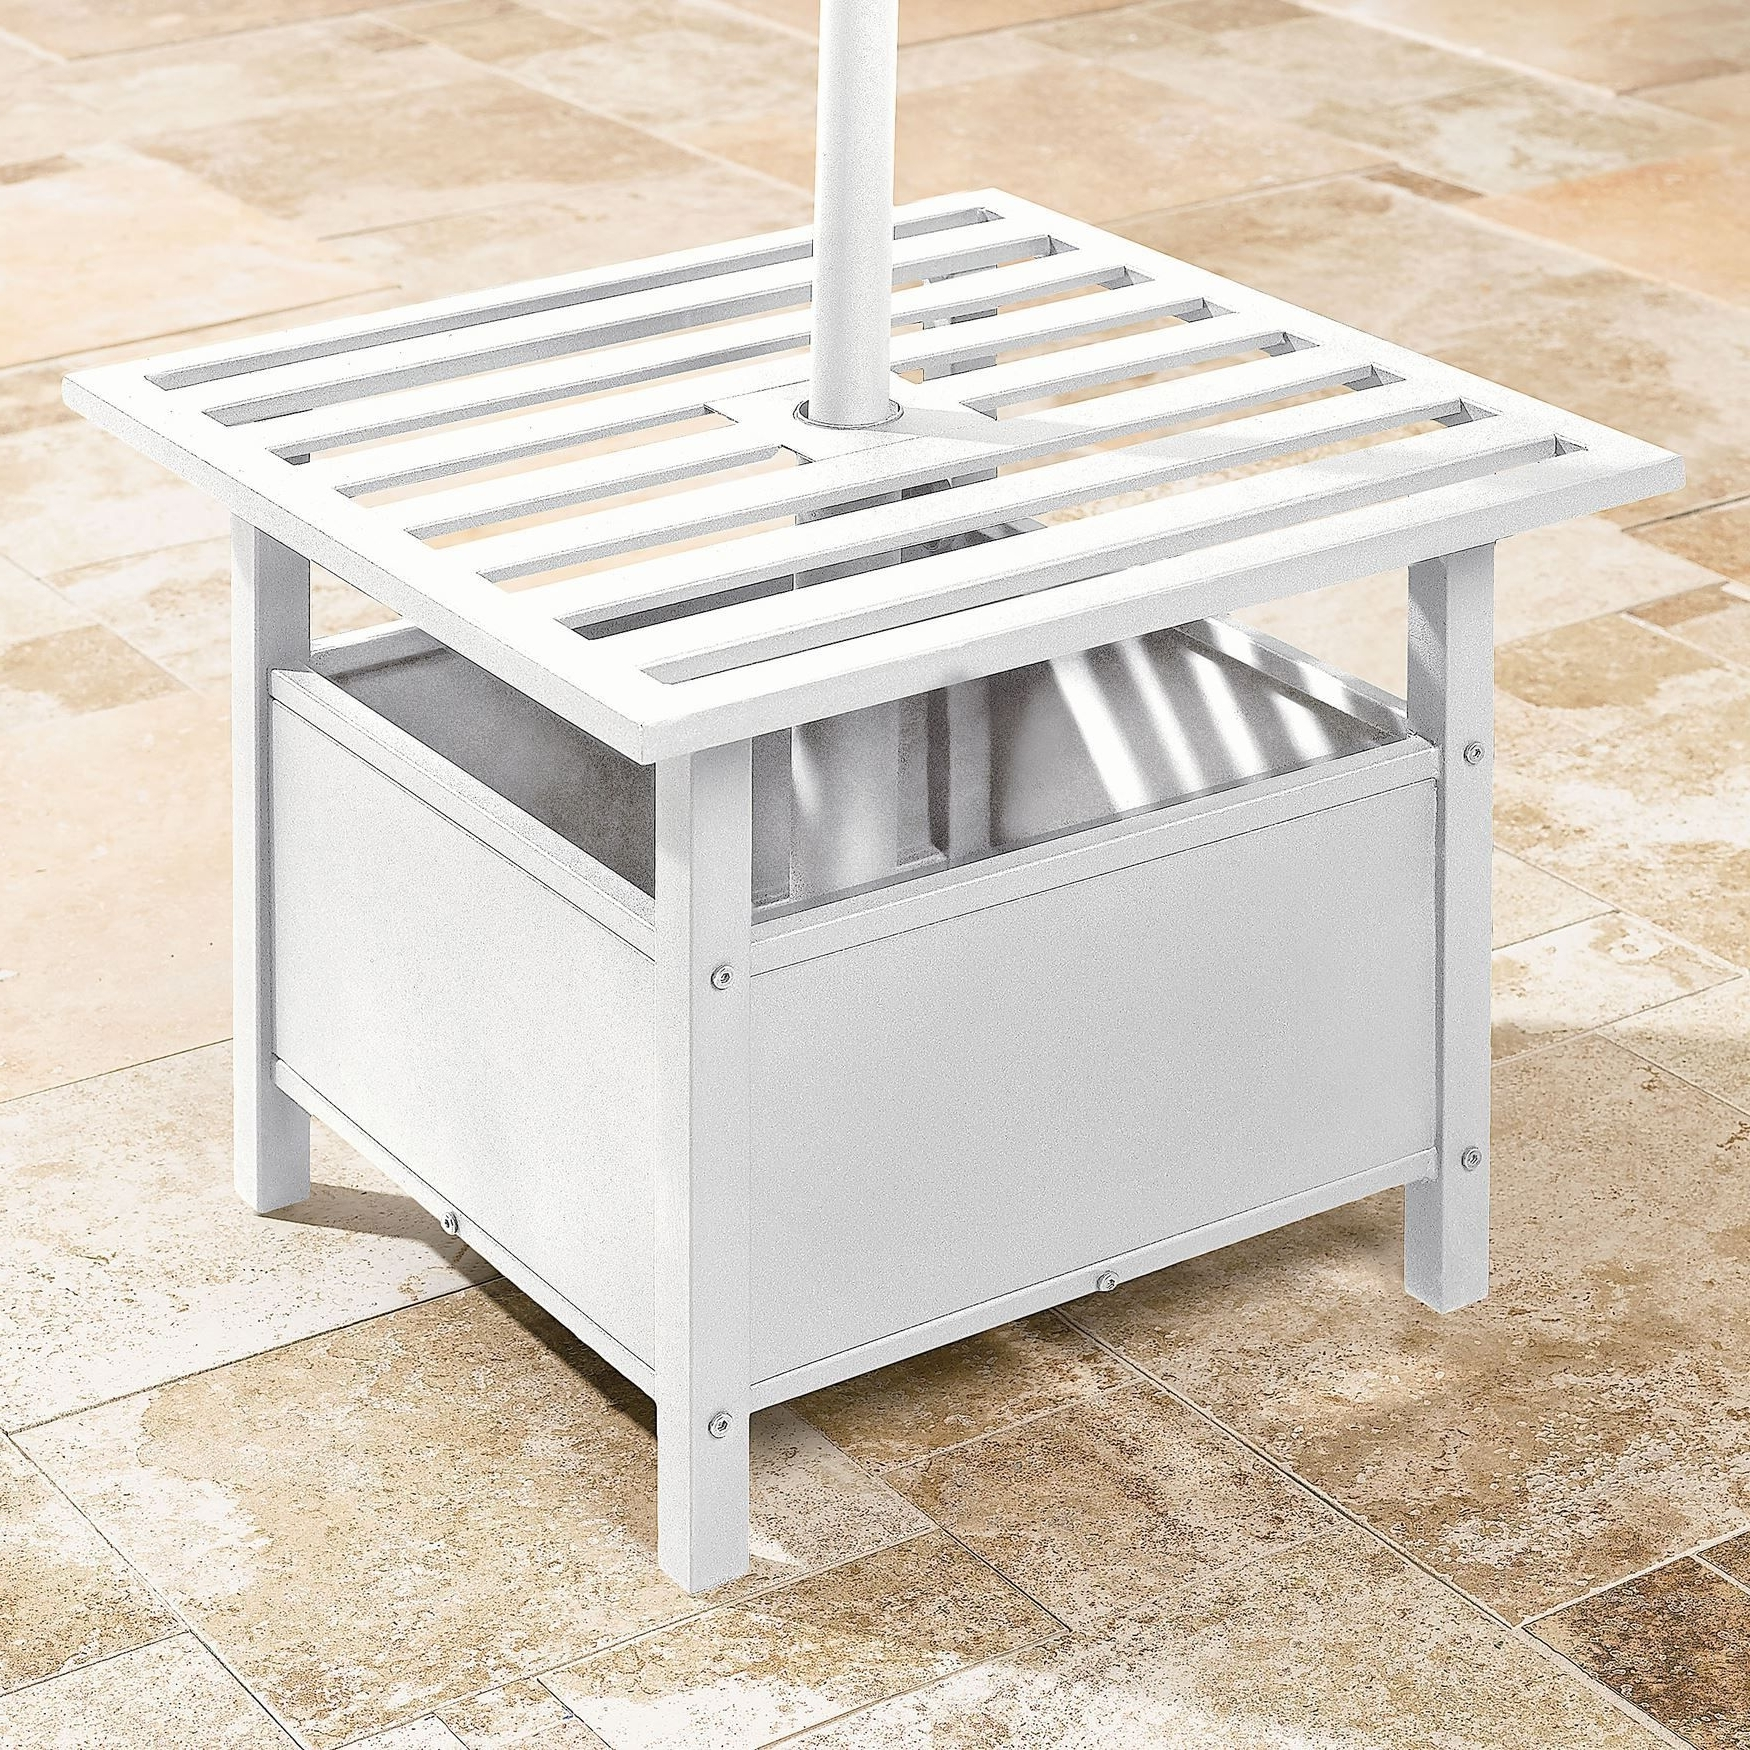 Well Known Patio Umbrella Side Tables Pertaining To 45 Patio Umbrella Stand Side Table, Hampton Umbrella Side Tables (View 5 of 20)